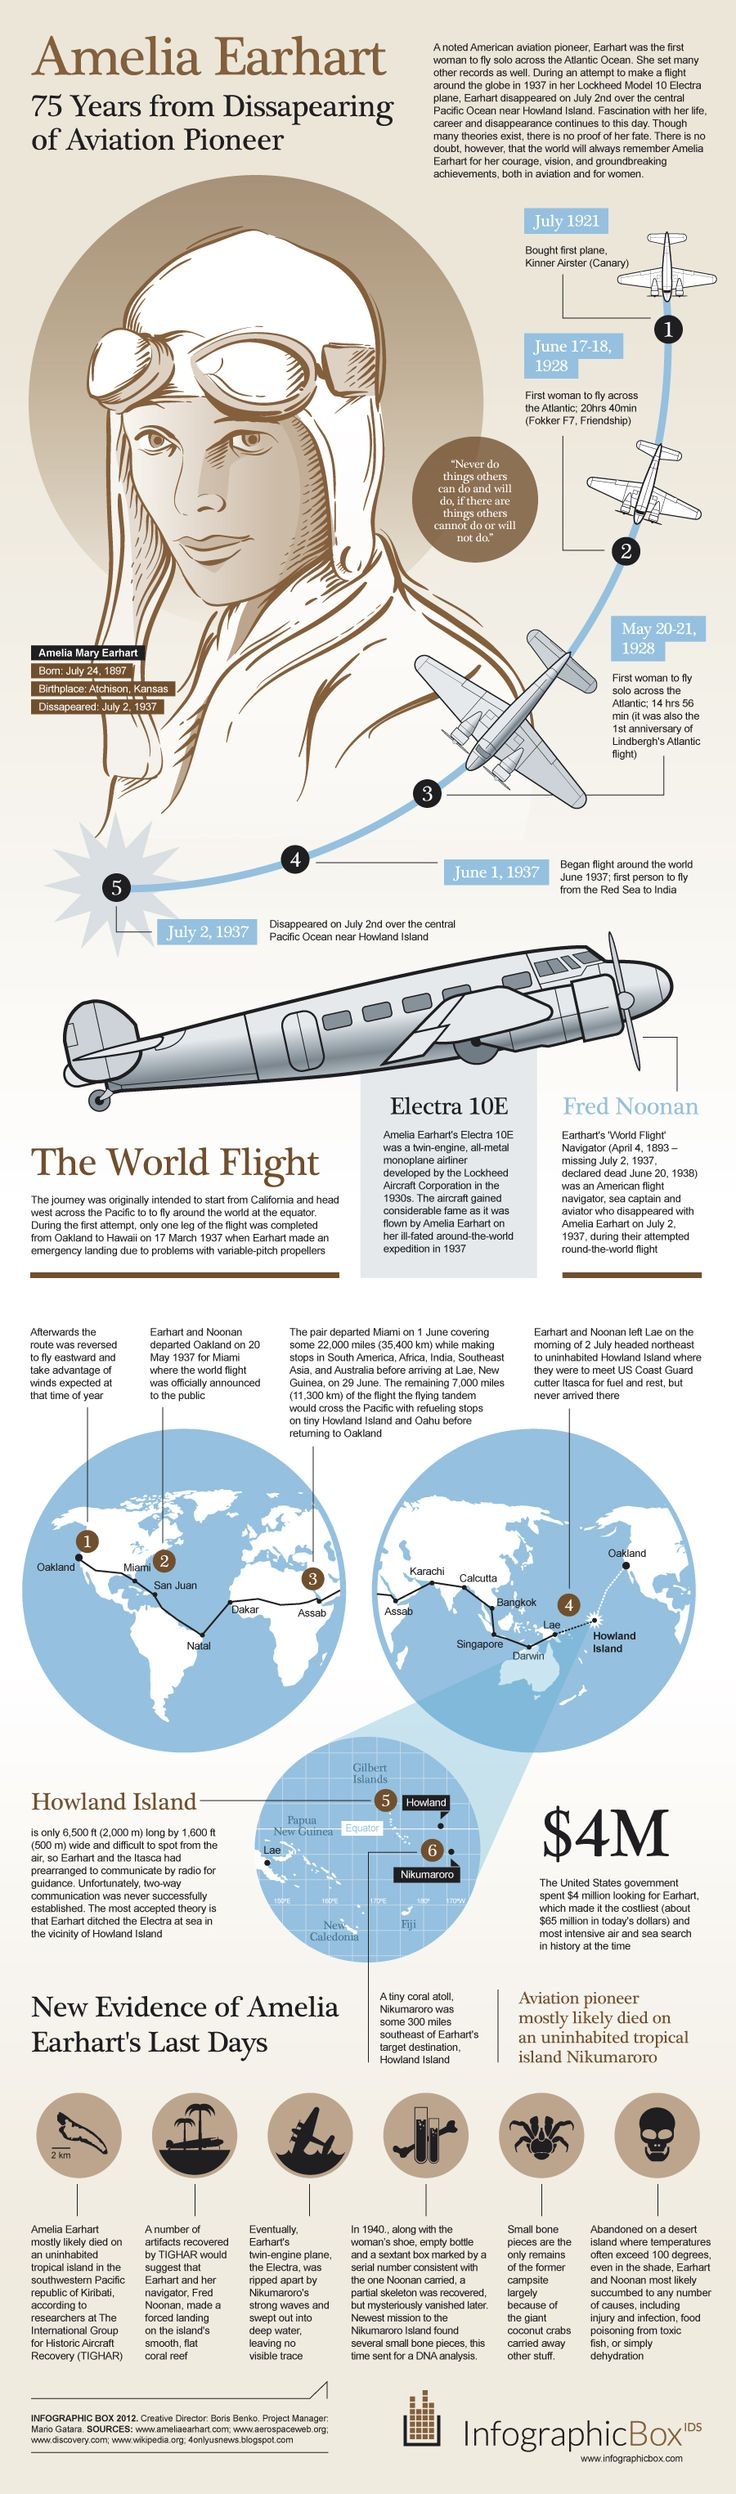 Amelia Earhart: 75 Years From Disappearance Of Aviation Pioneer – Infographic